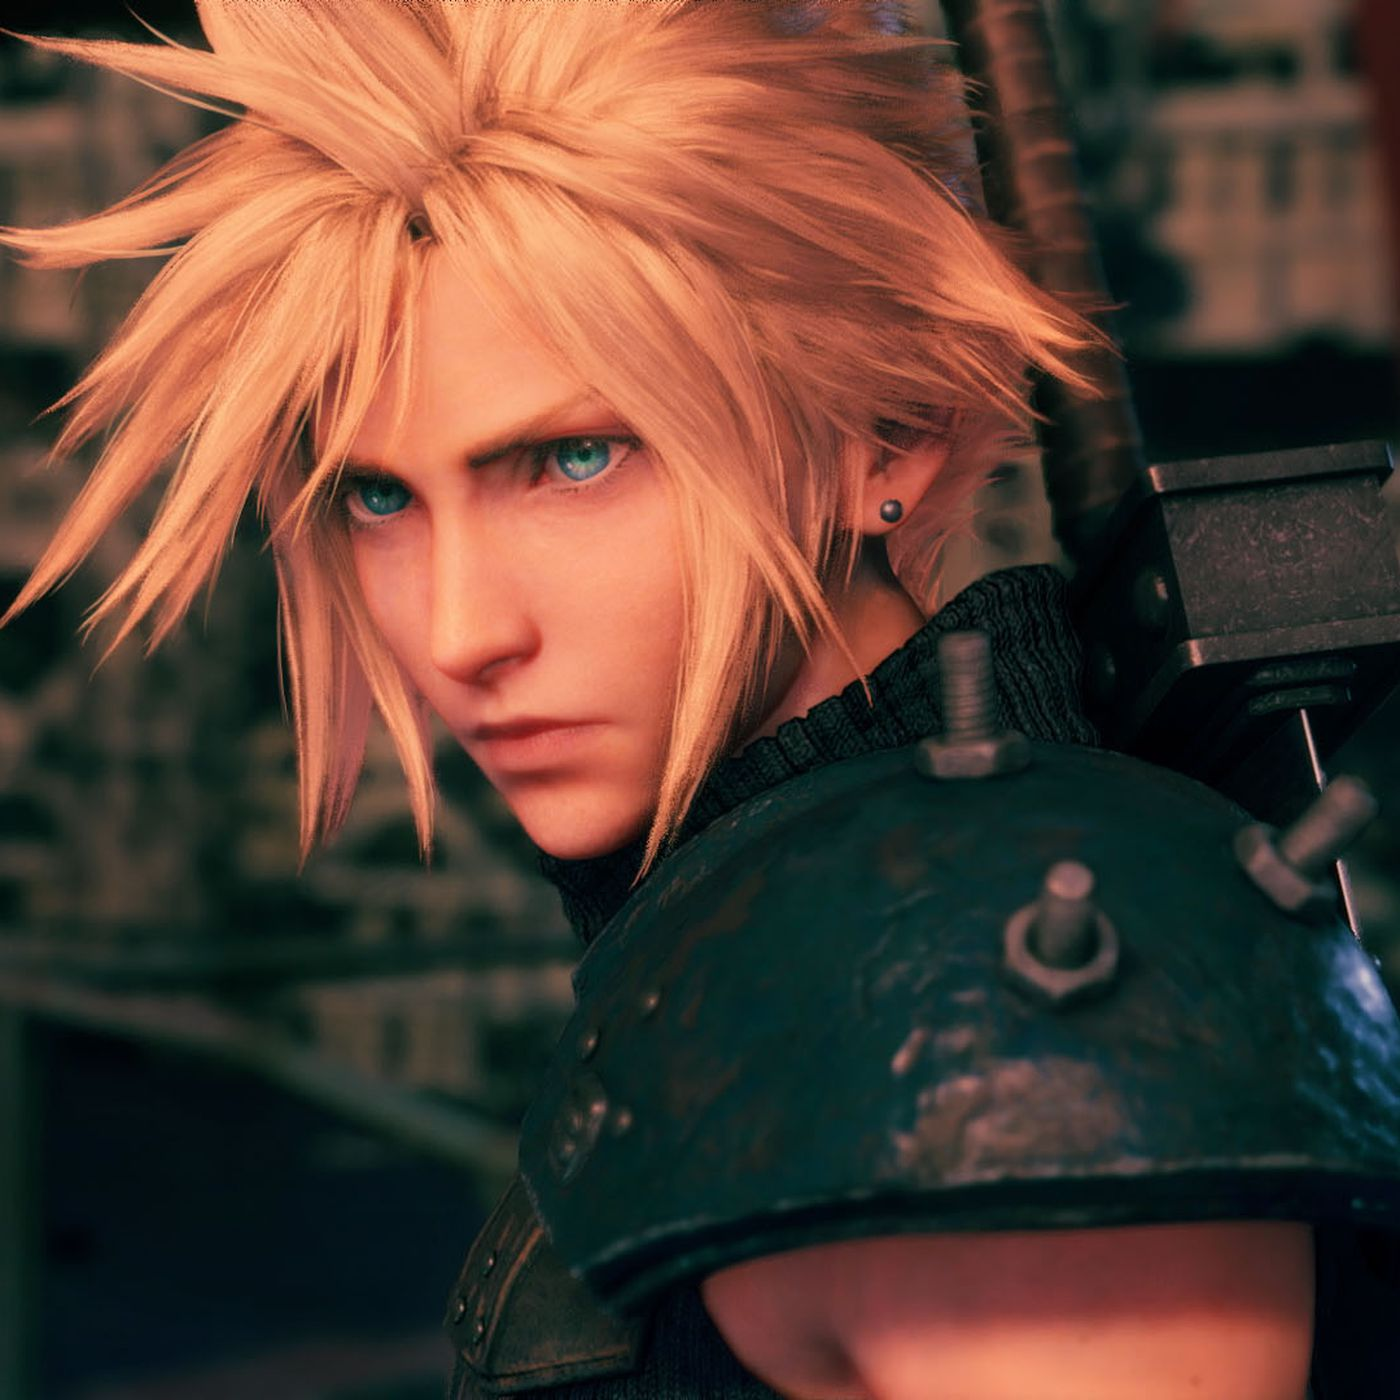 A Final Fantasy Vii Remake Demo Is Out Now For Ps4 The Verge